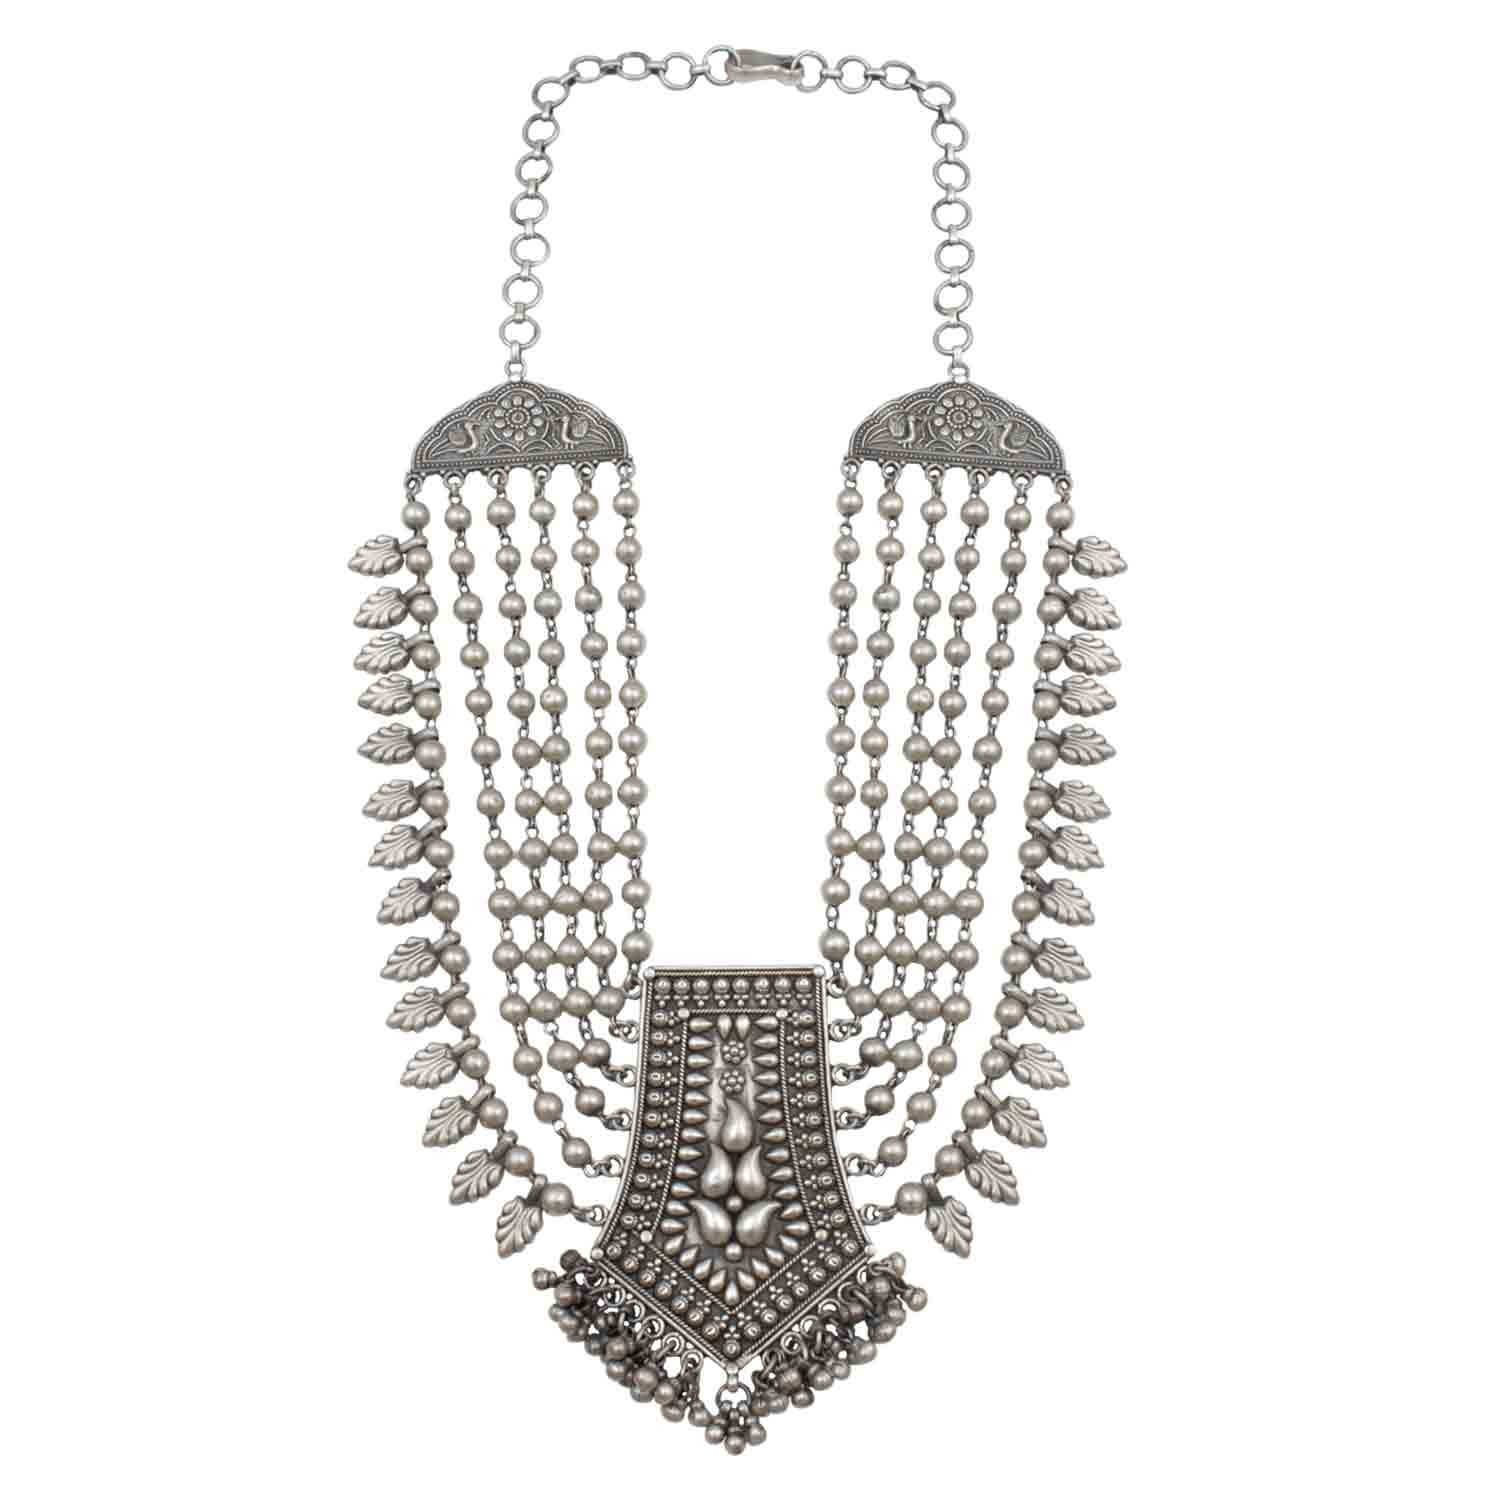 String of Beads Silver Necklace